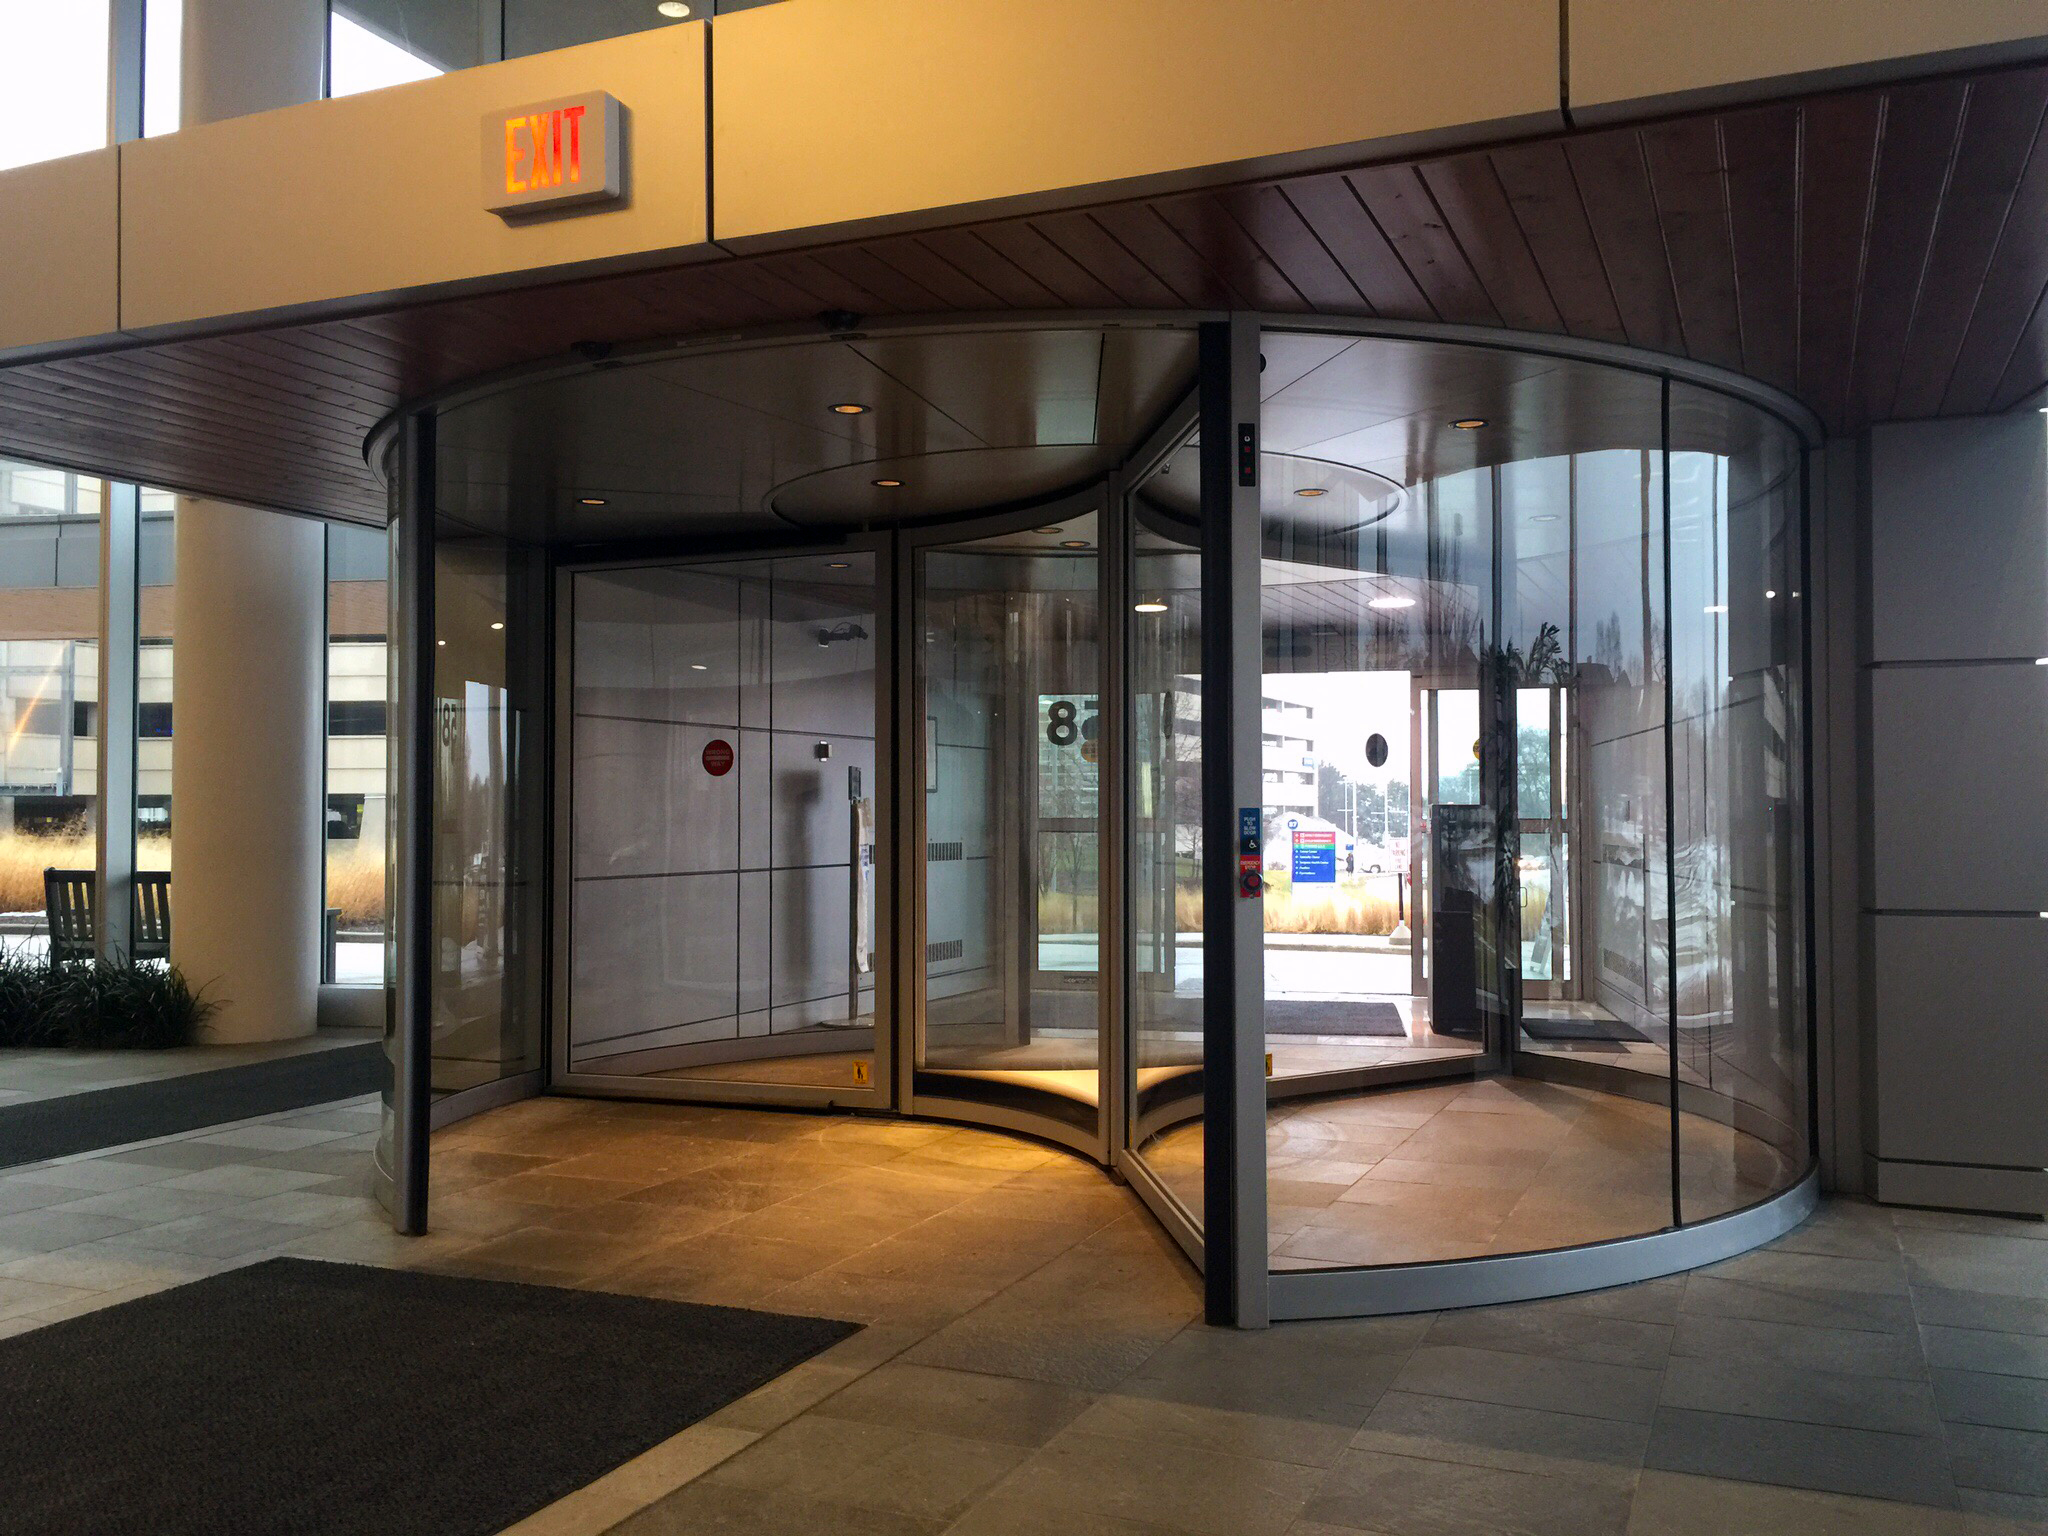 Wisconsin Hospitals Use Boon Edam Revolving Doors In